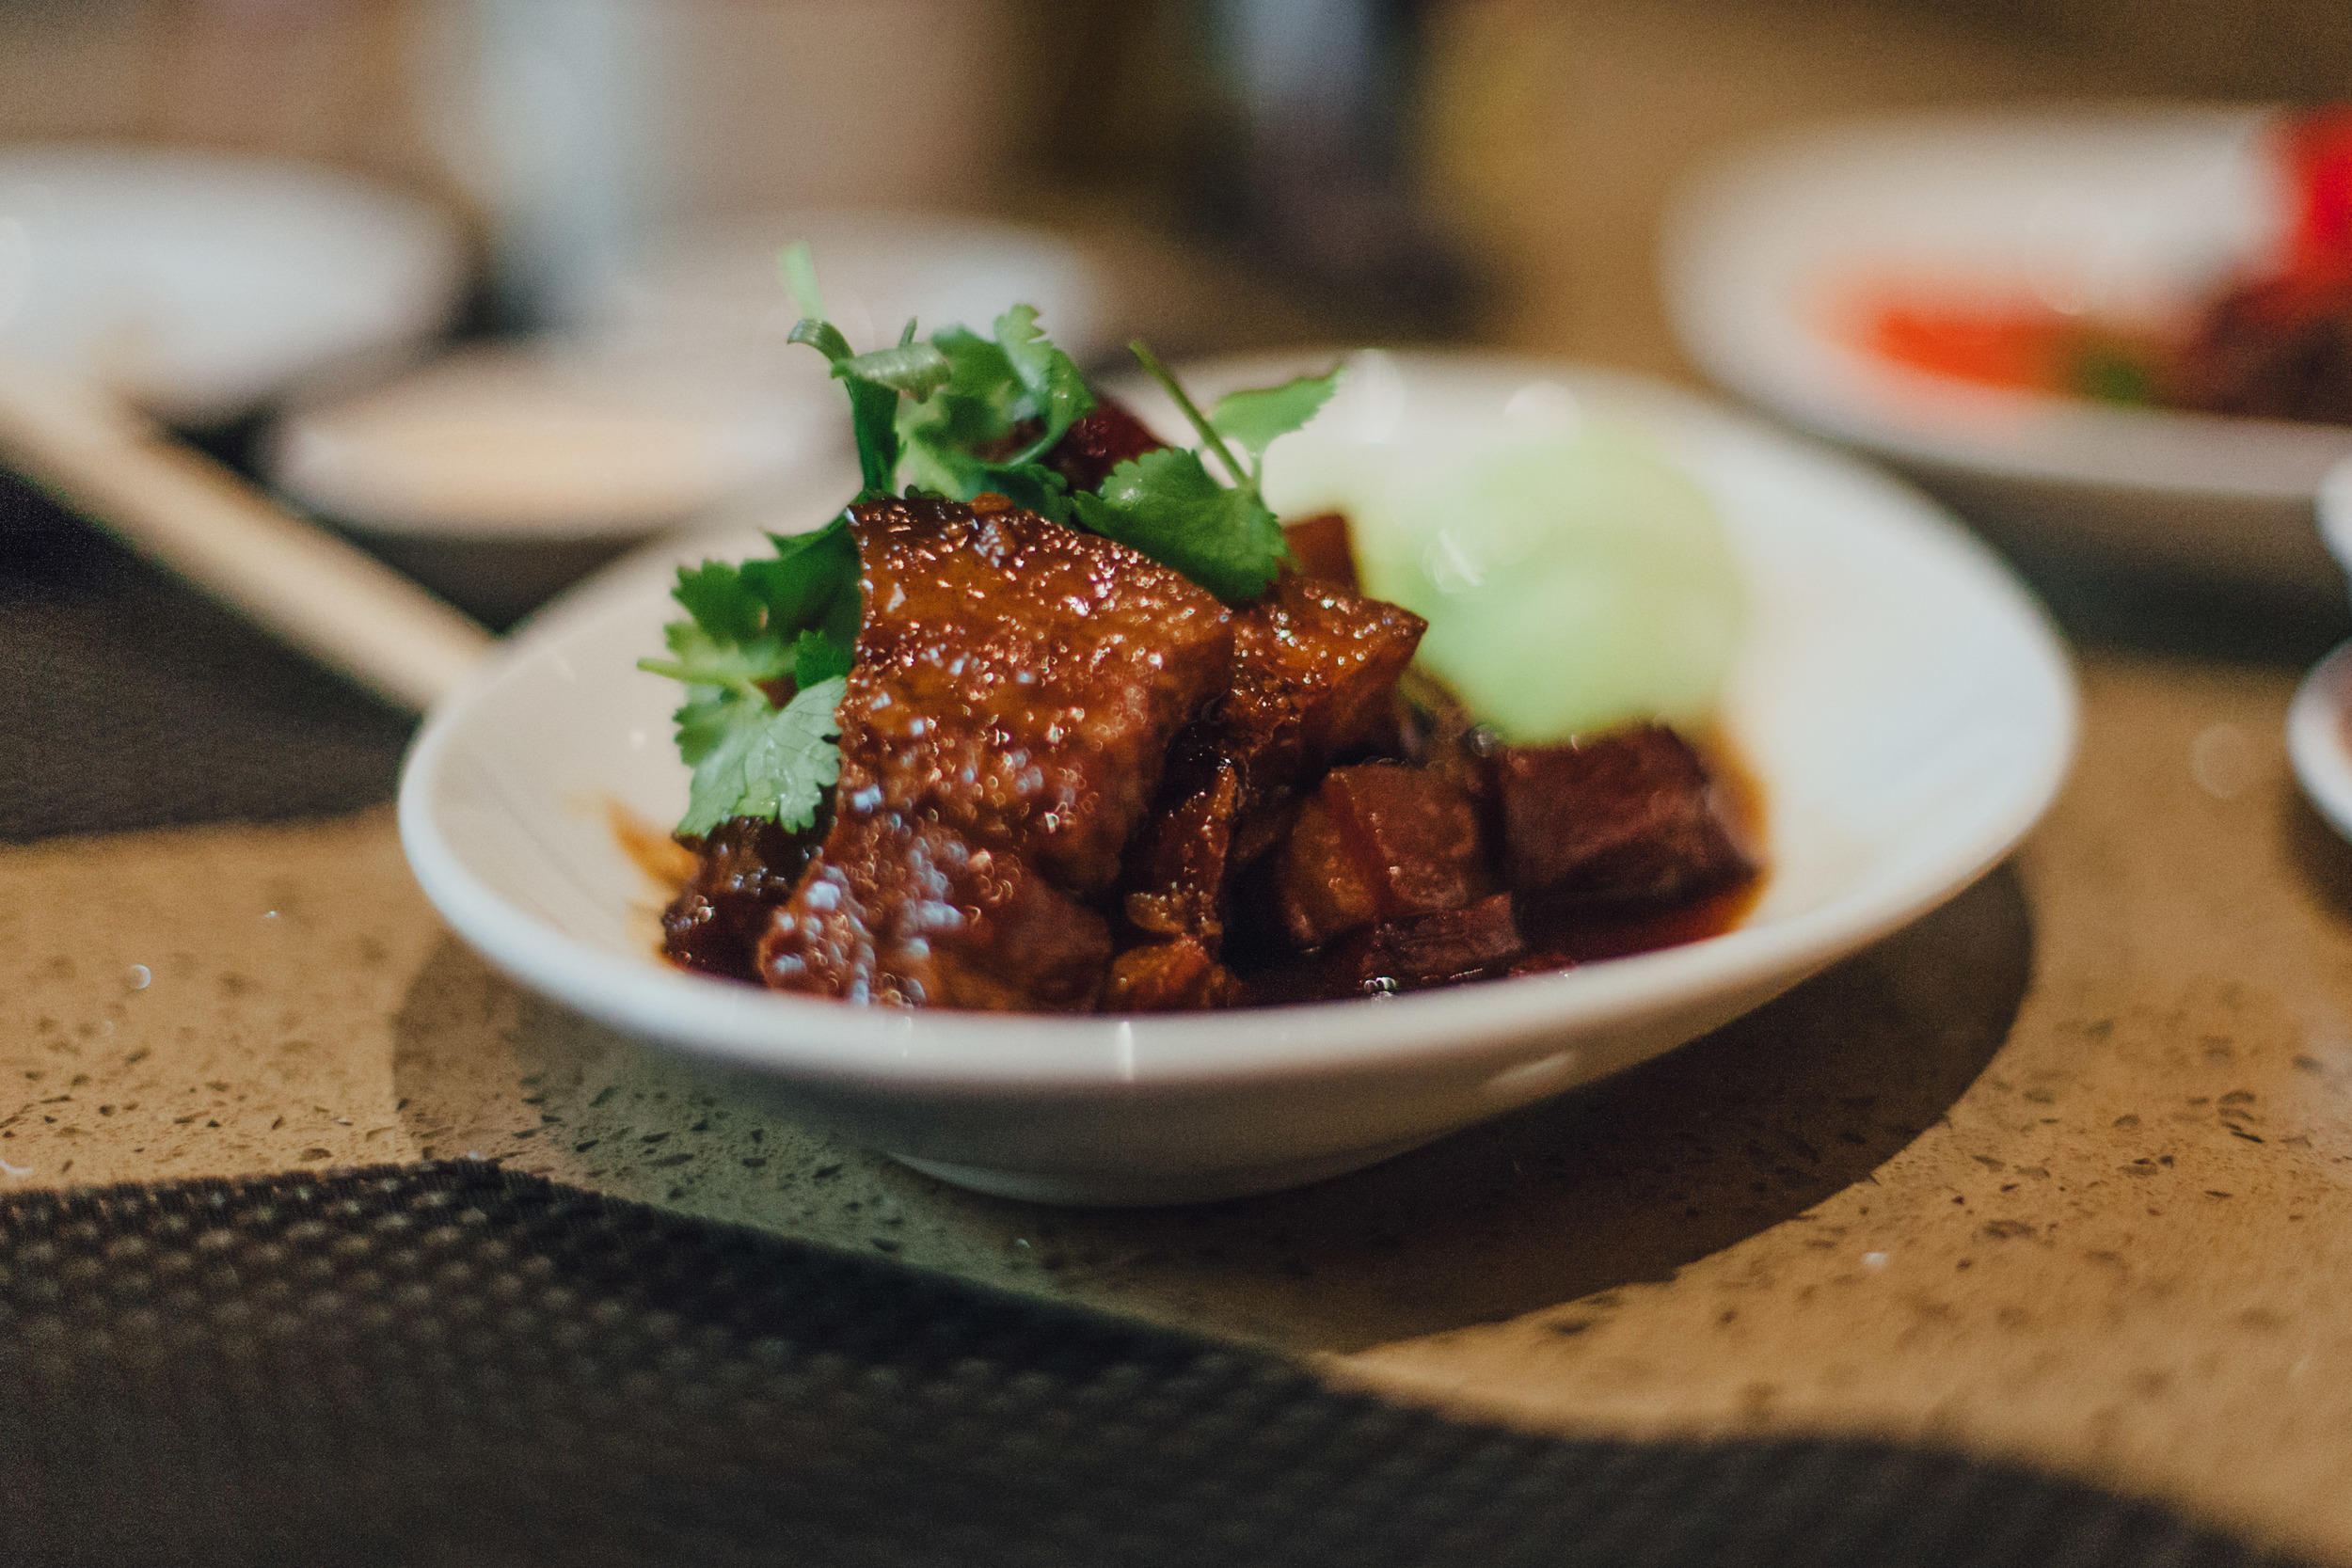 Braised Pork Belly: Pork belly simmered and braised in a thick, flavorful sauce.